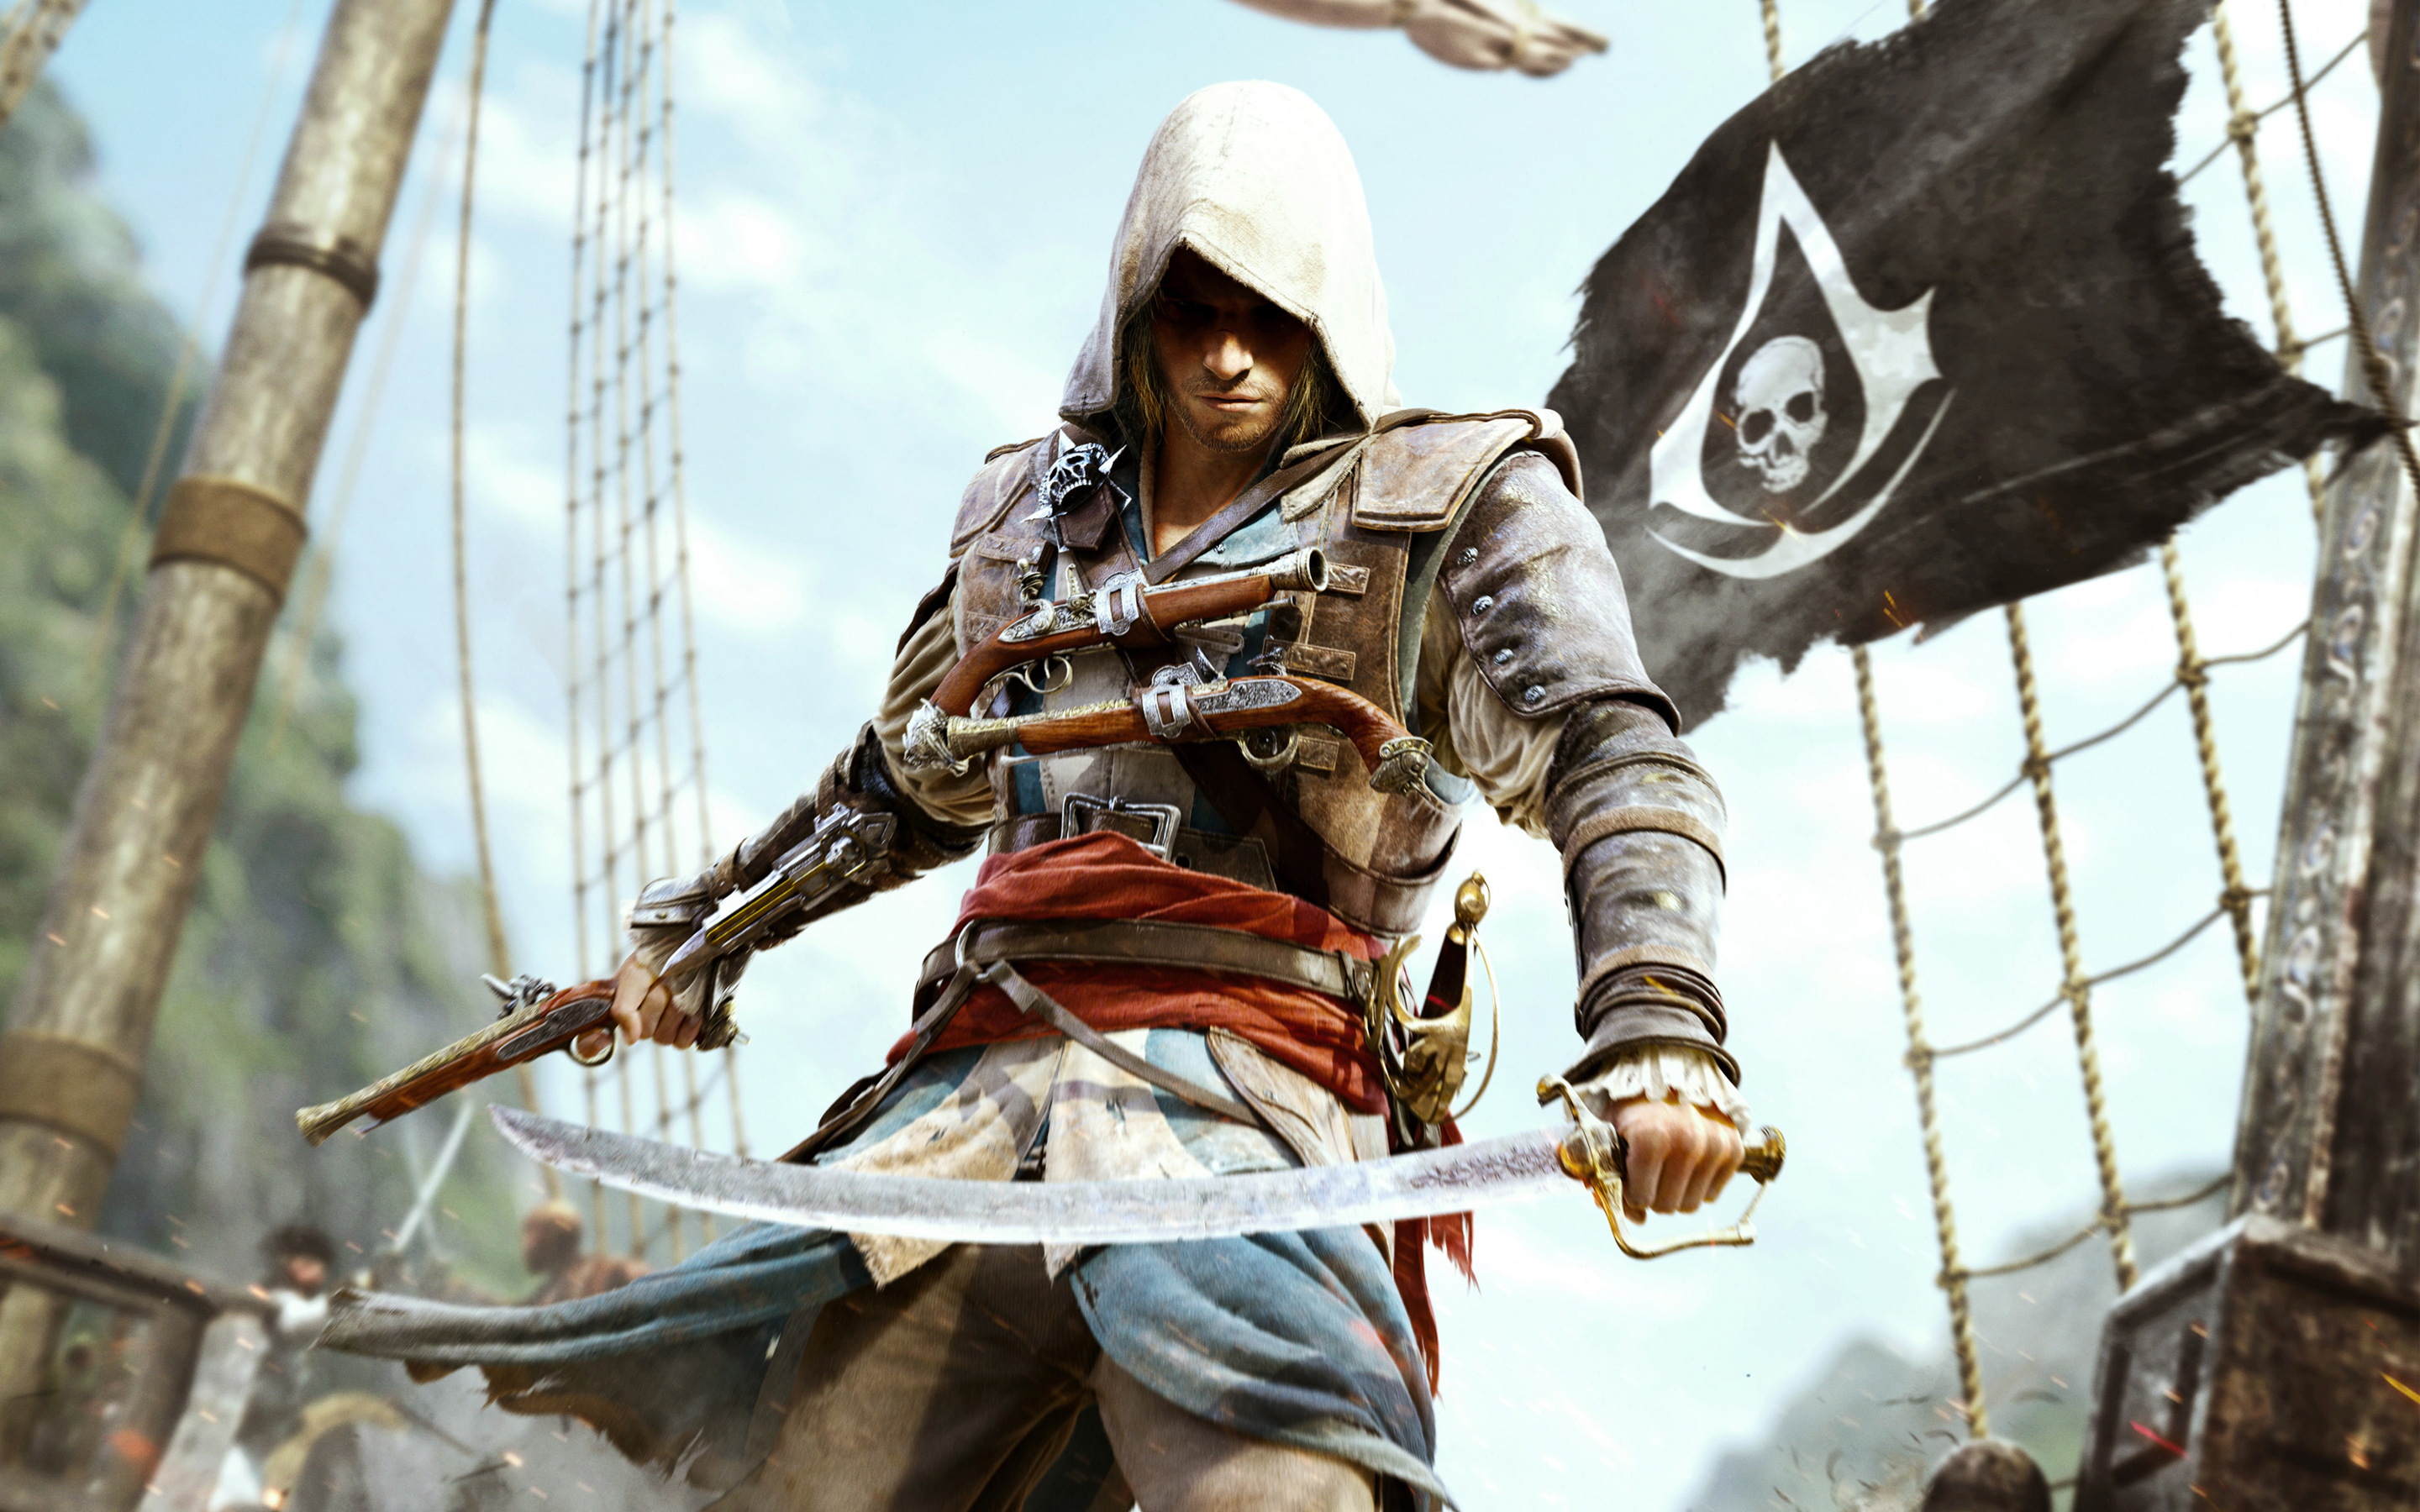 http://www.blastr.com/sites/blastr/files/assassins_creed_4_black_flag_game-wide.jpg